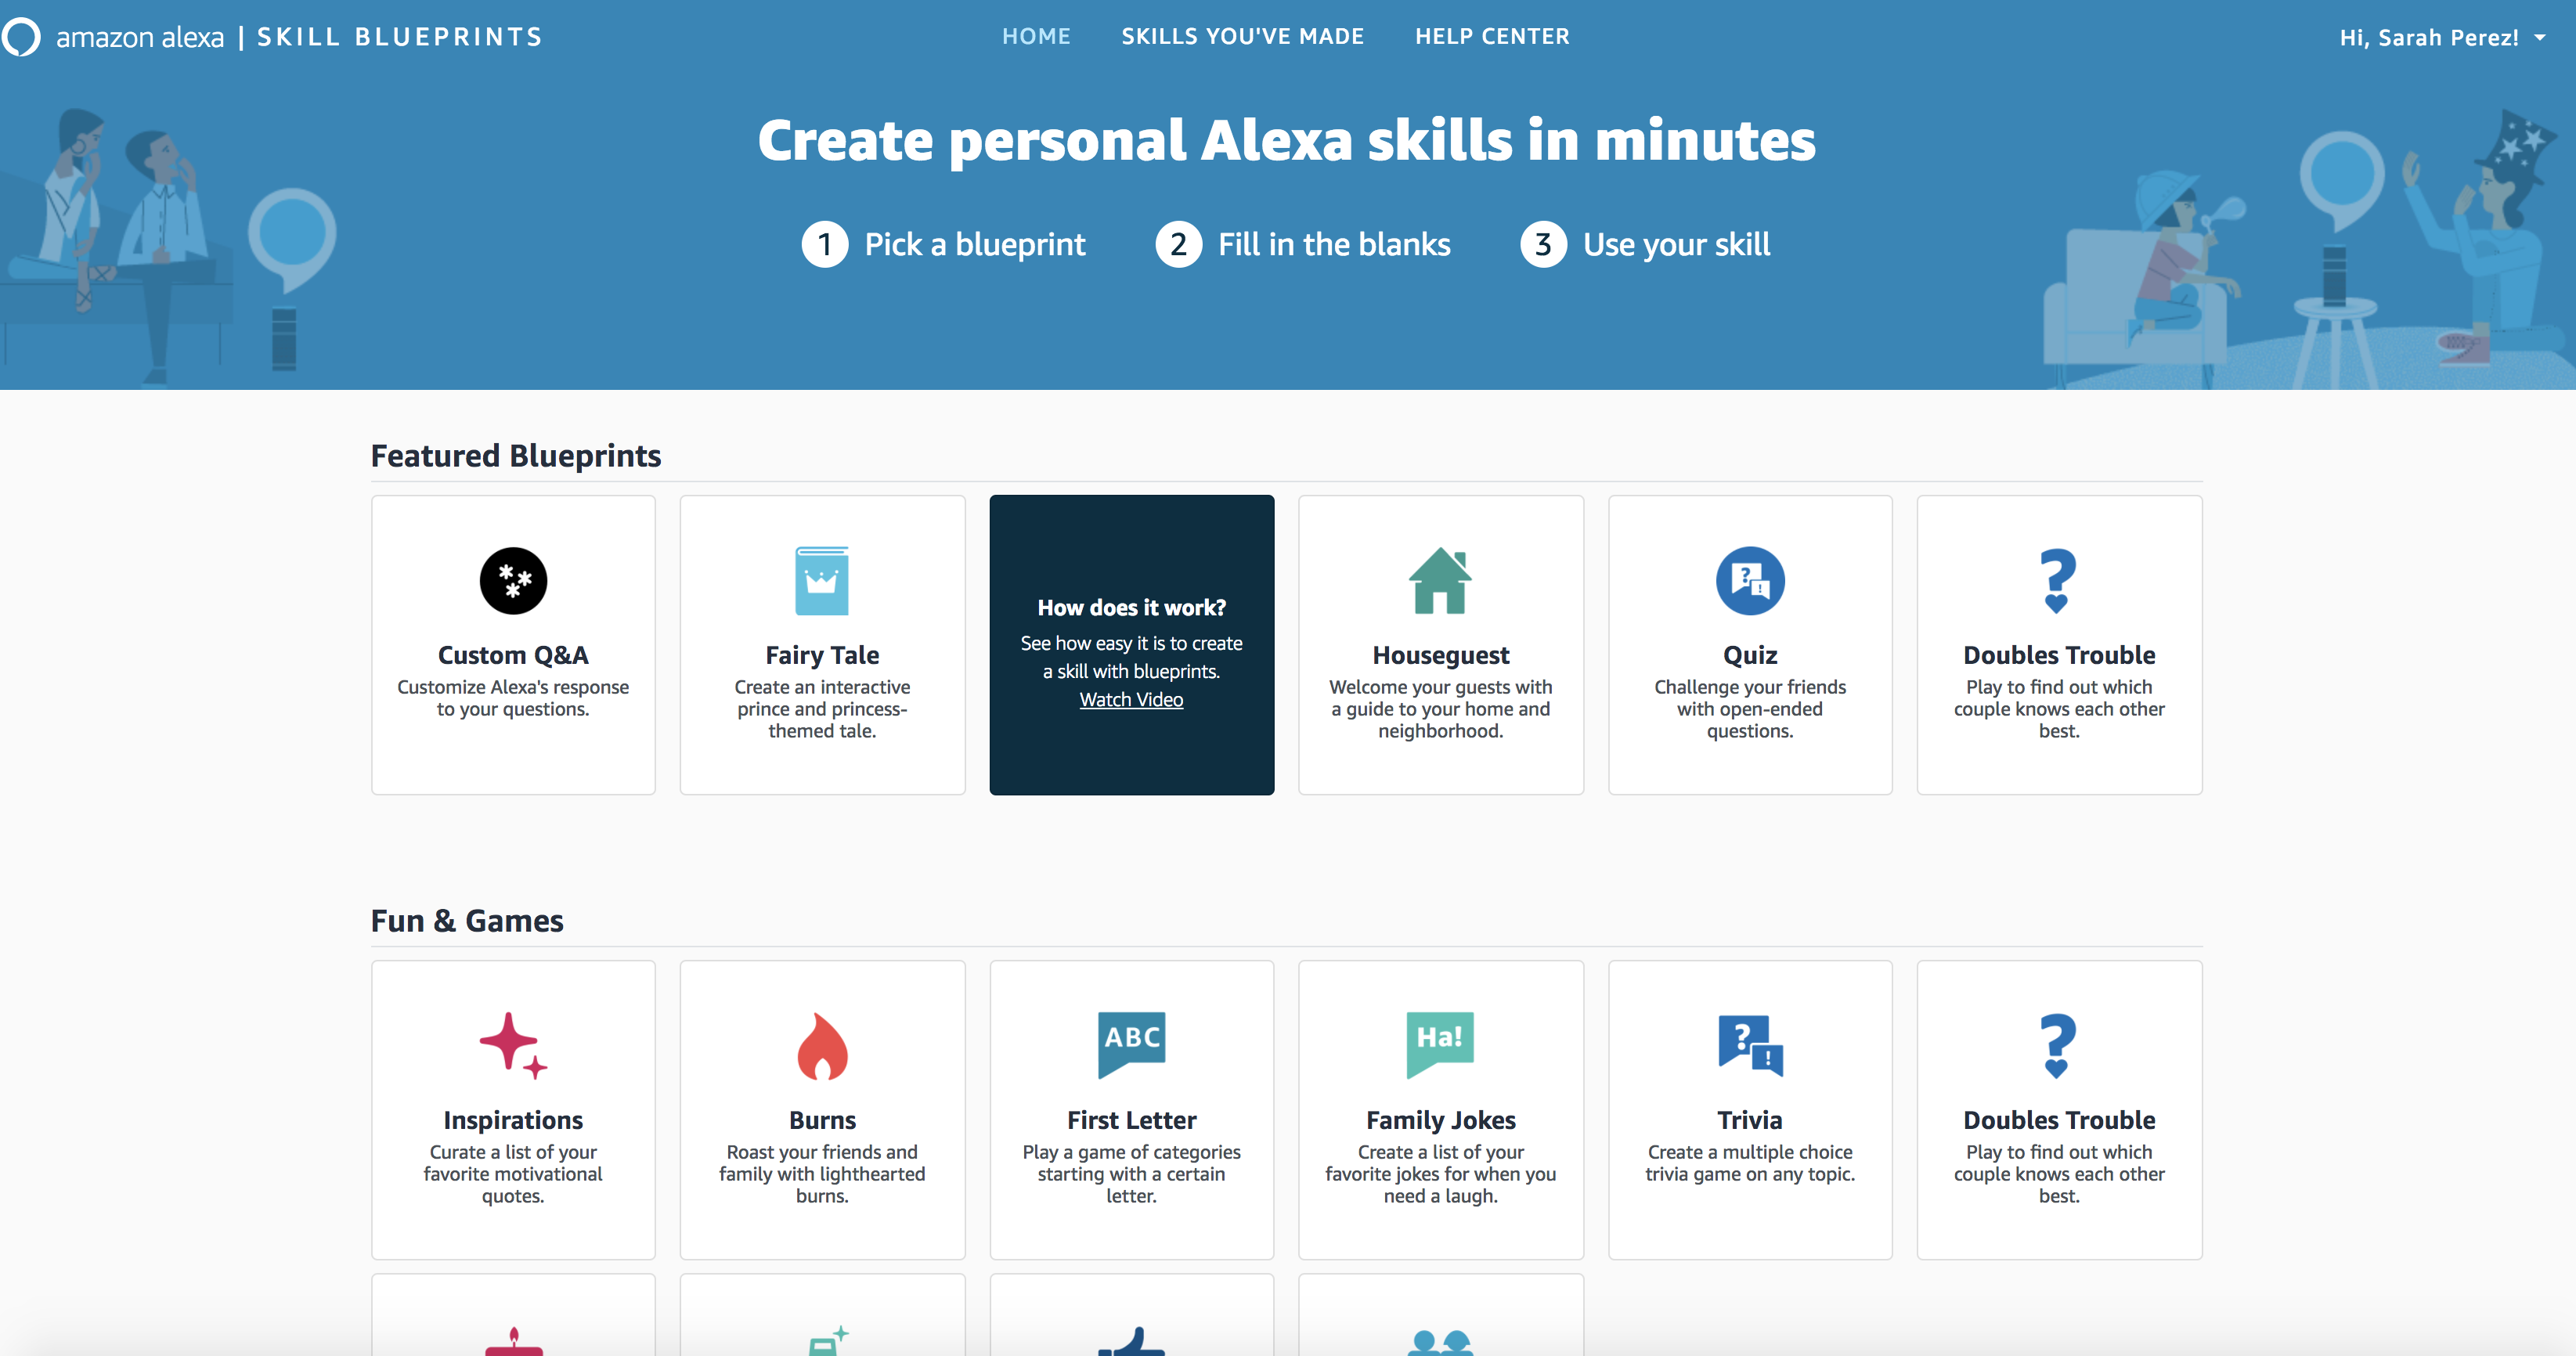 Amazon lets you create Alexa Skills with Alexa Skill Blueprints